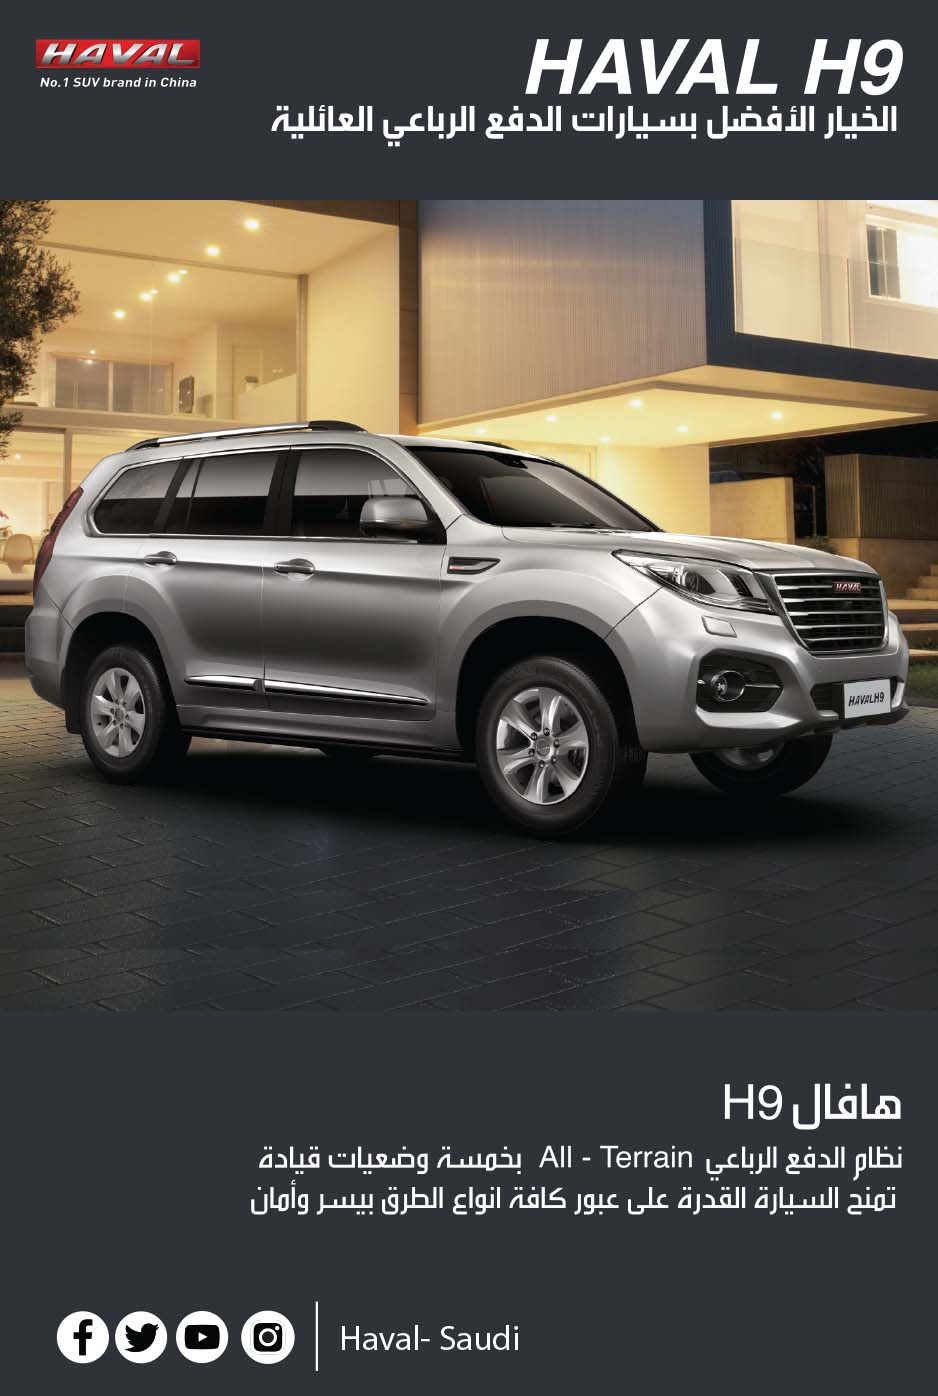 http://haval.sa/new-haval-h9/